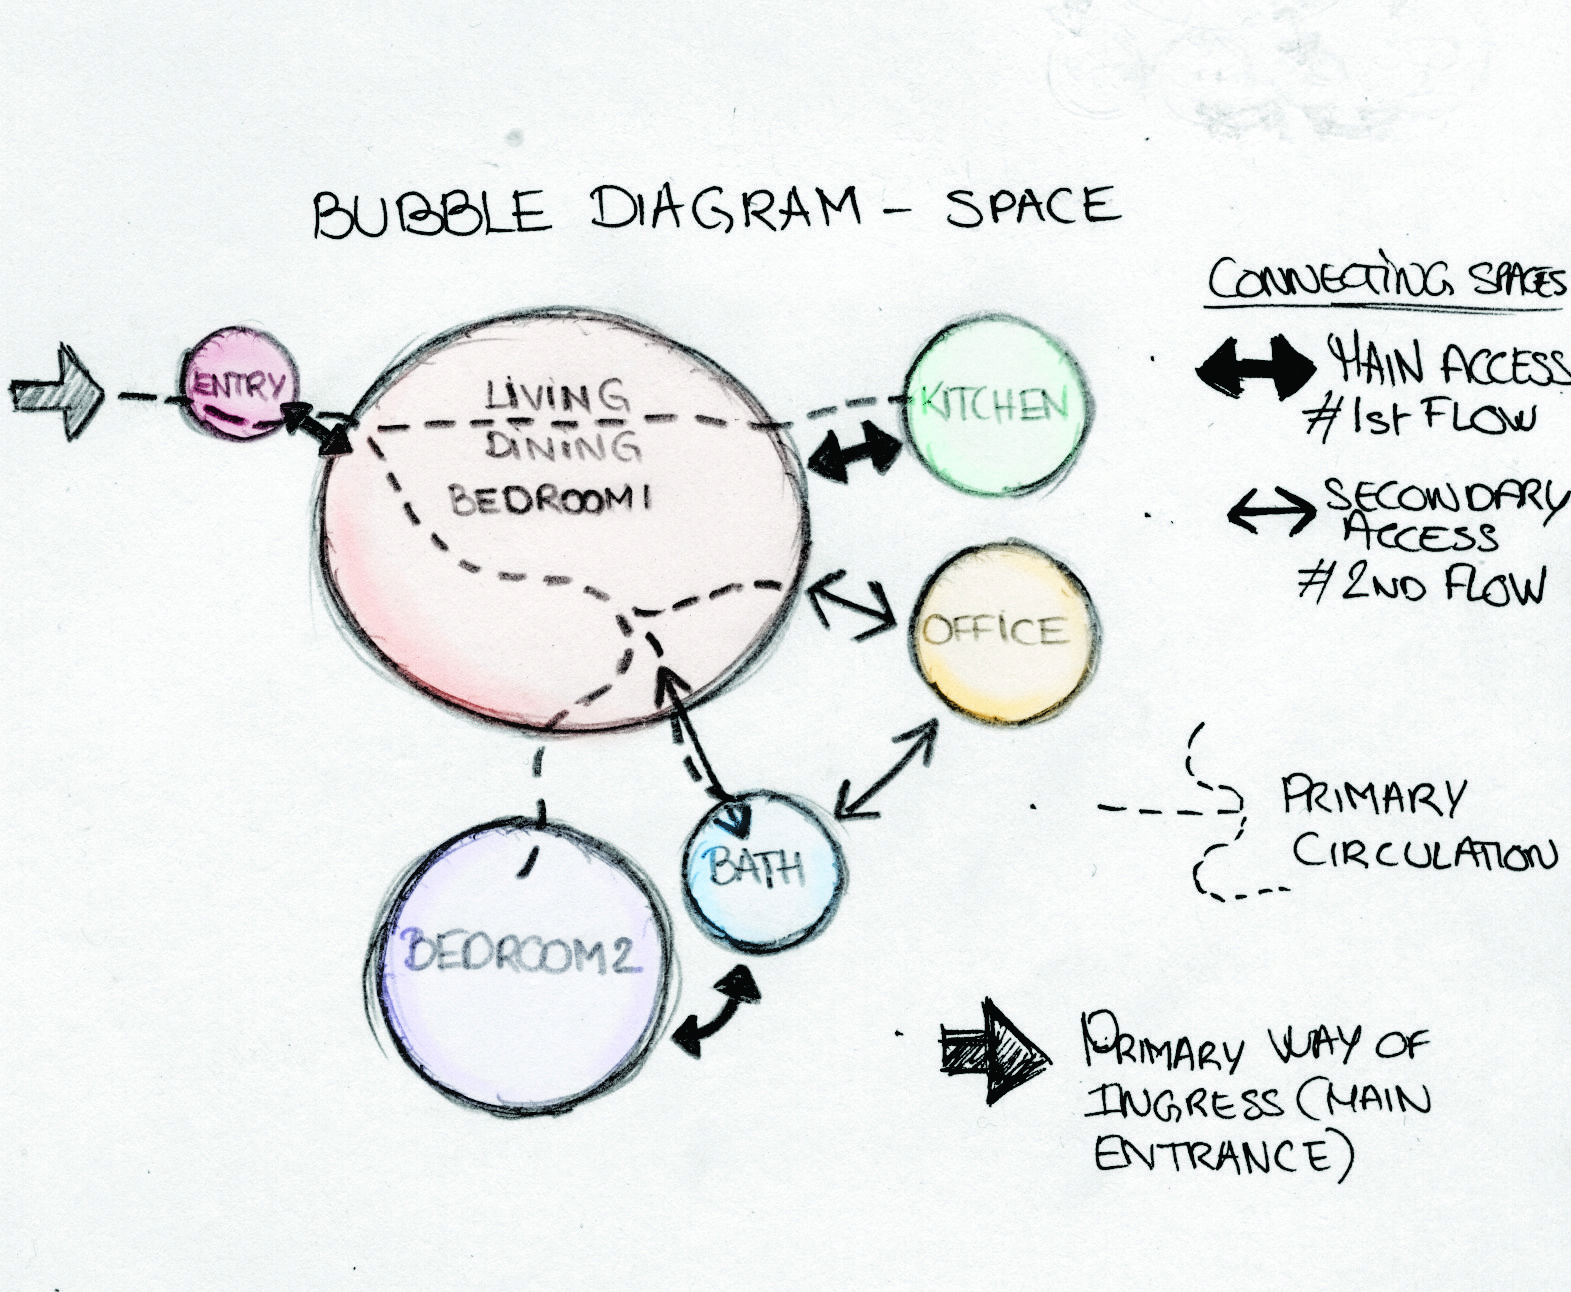 what are bubble diagram hertzsprung russell activity space distribution home cindy aimé